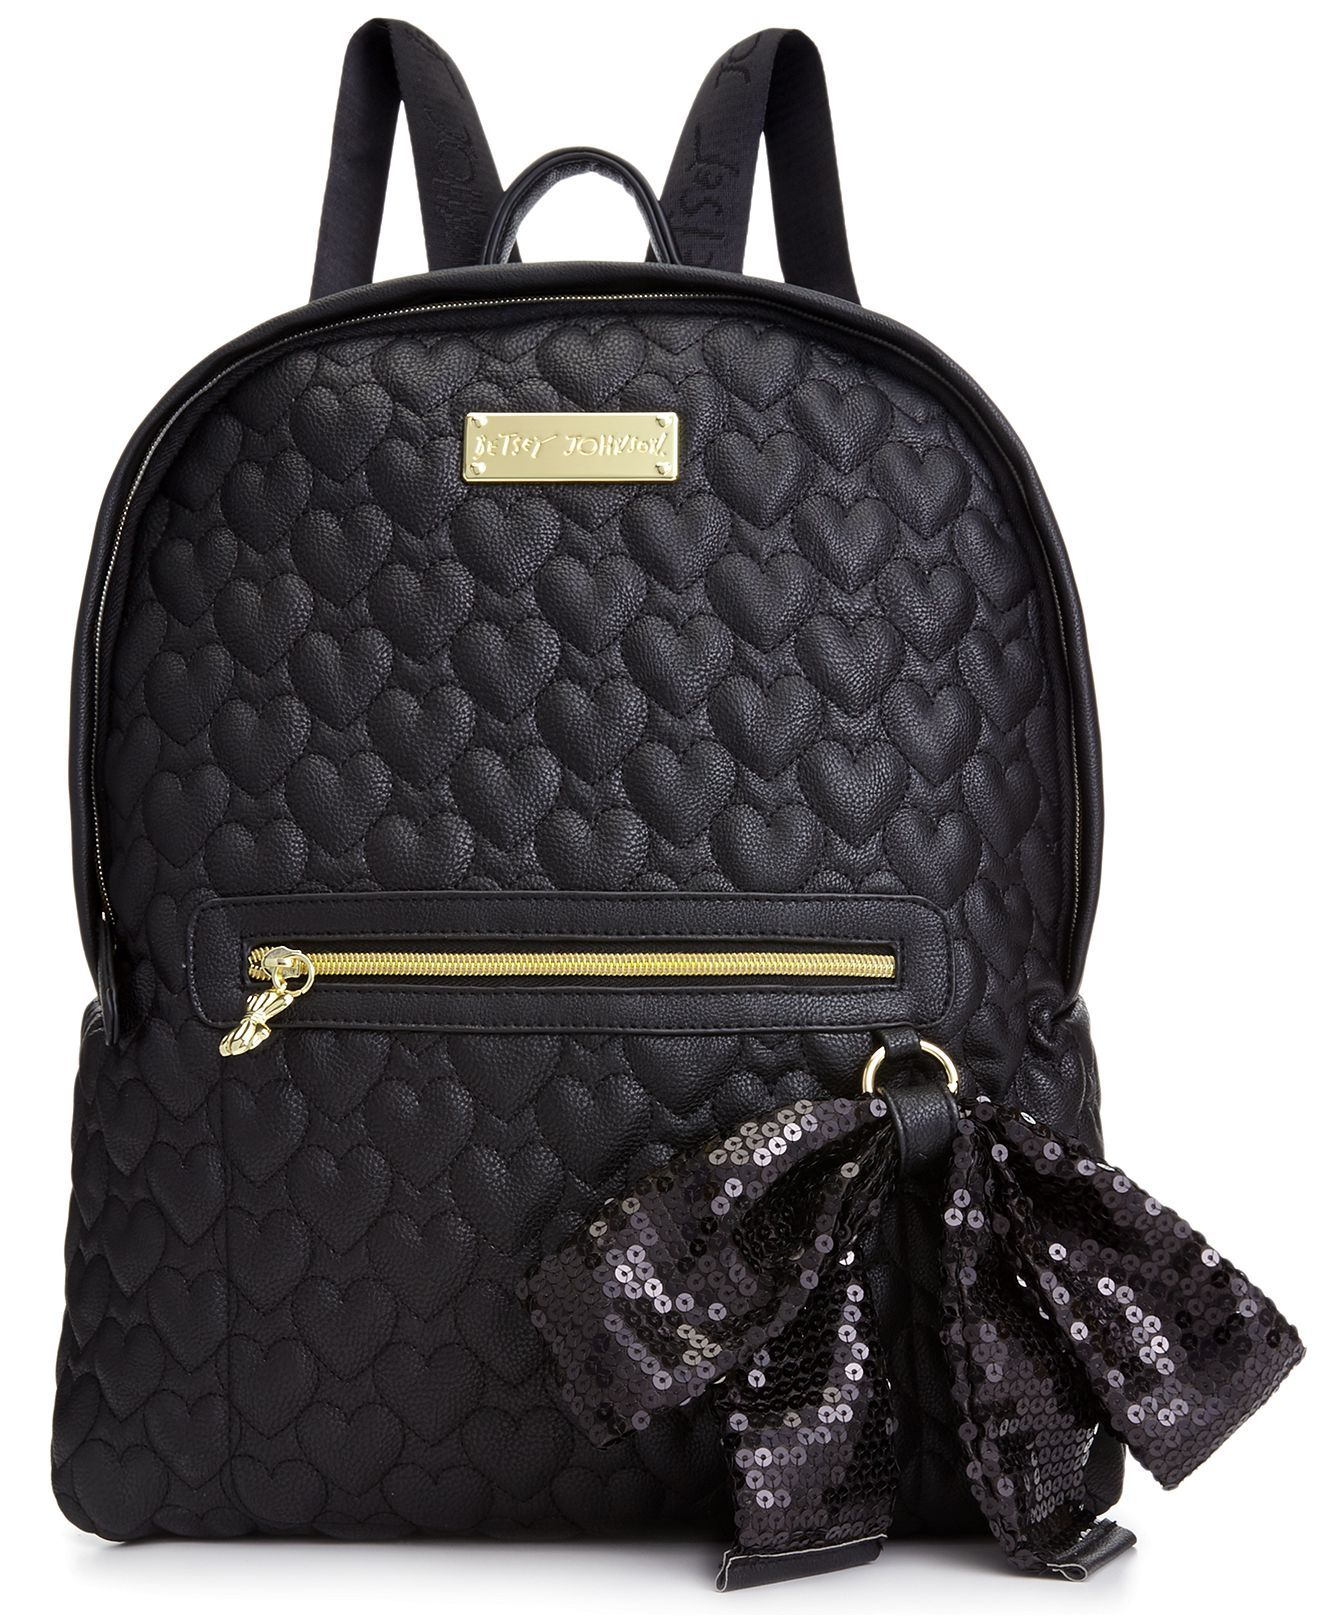 Macys baby hair accessories - Betsey Johnson Handbag Quilted Love Backpack Handbags Accessories Macy S